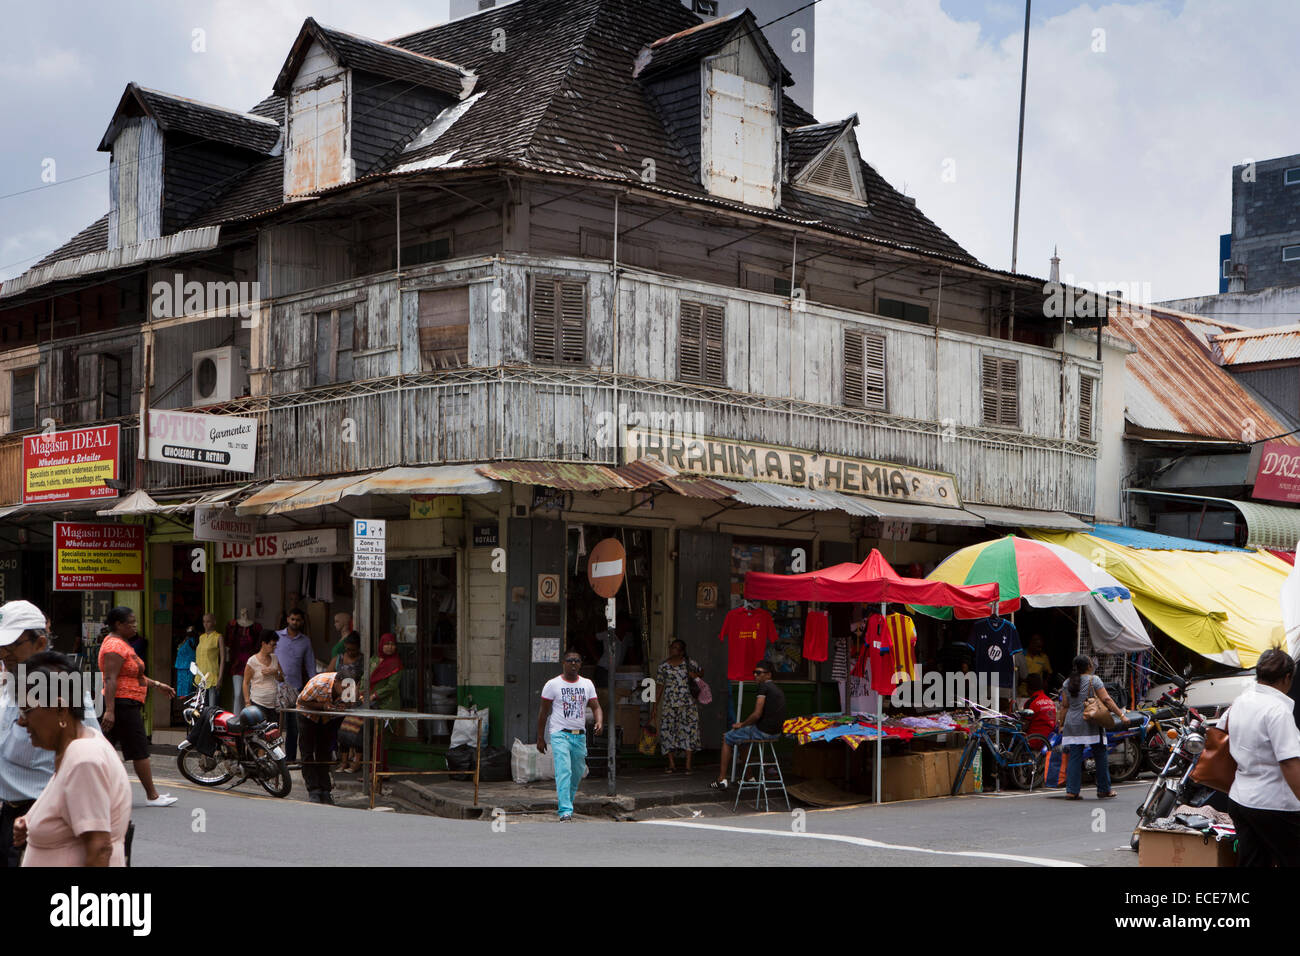 Mauritius port louis rue royale old moslem owned corner shop in stock photo royalty free - Mauritius market port louis ...